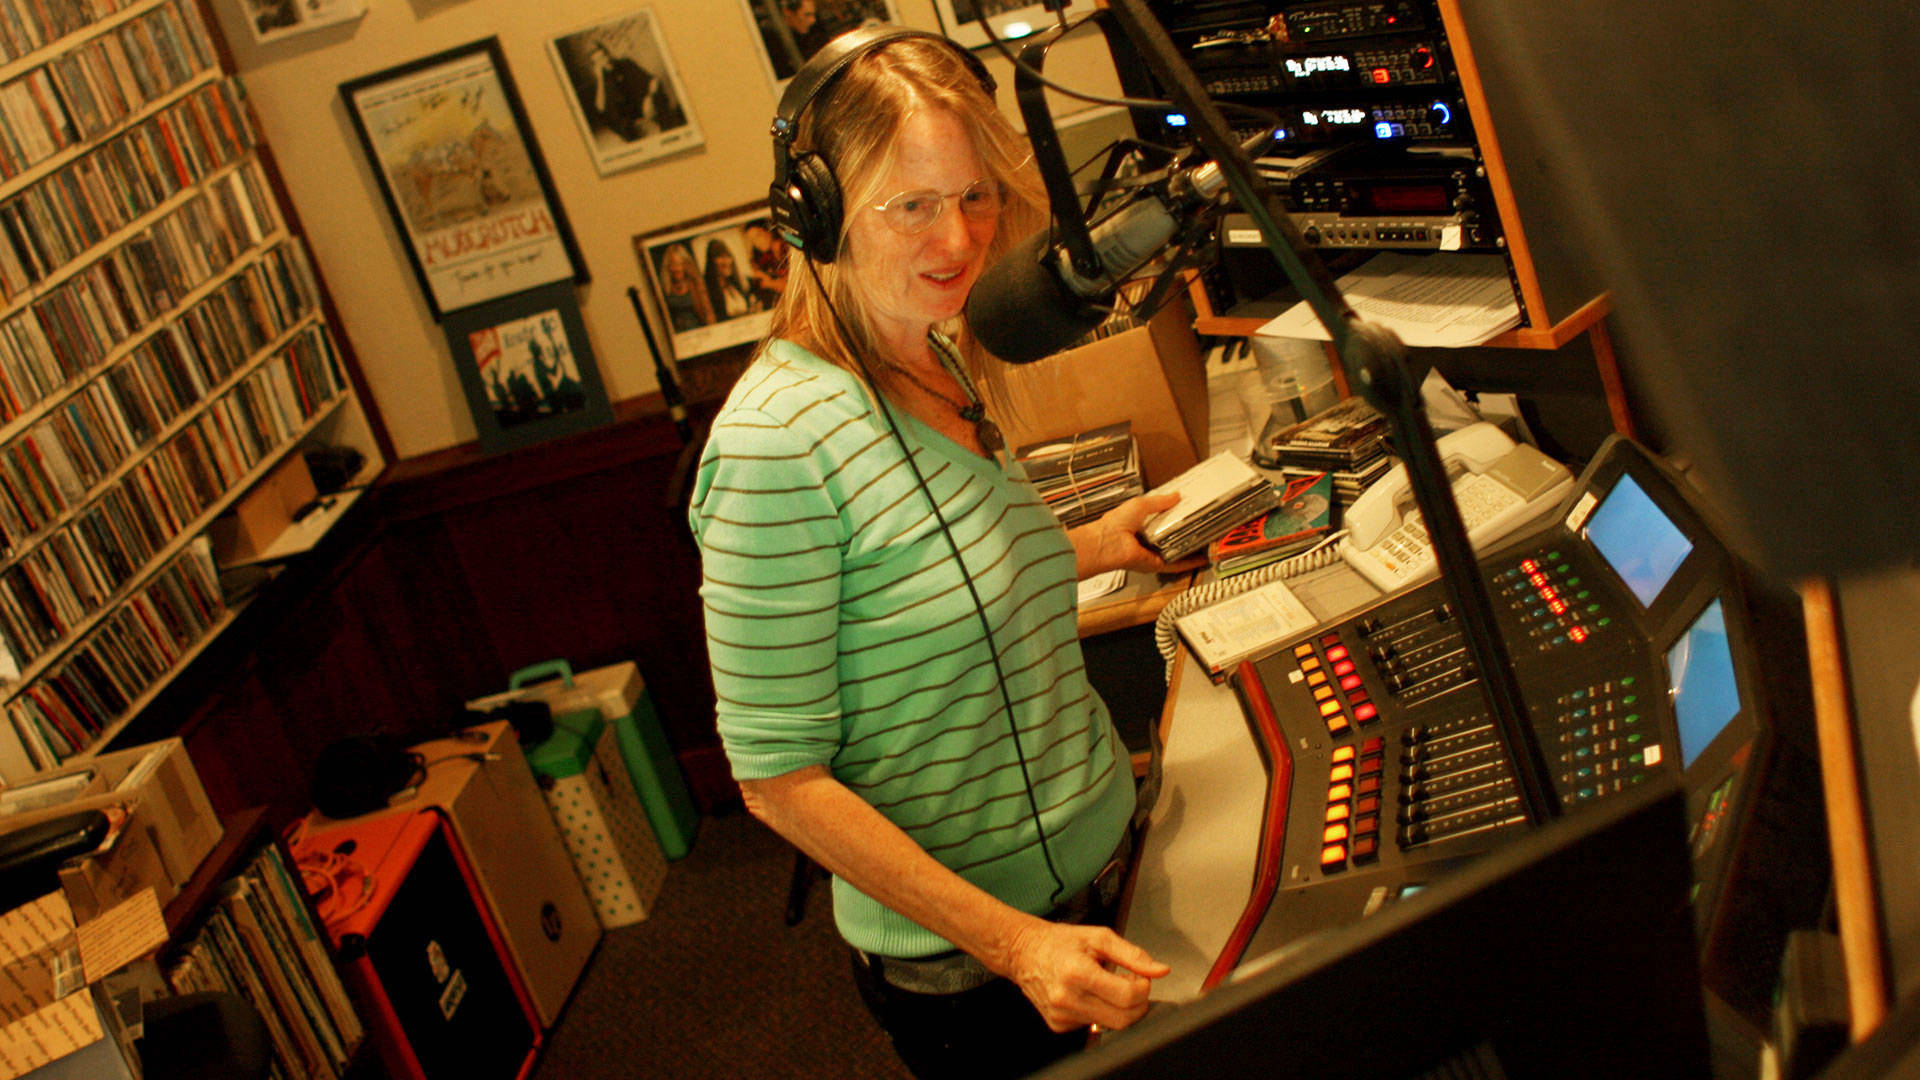 Robin Pressman on the air at KRSH-FM in Santa Rosa. Pressman lost her house in the Oct. 8 fires, and finds weekly healing in music for listeners.